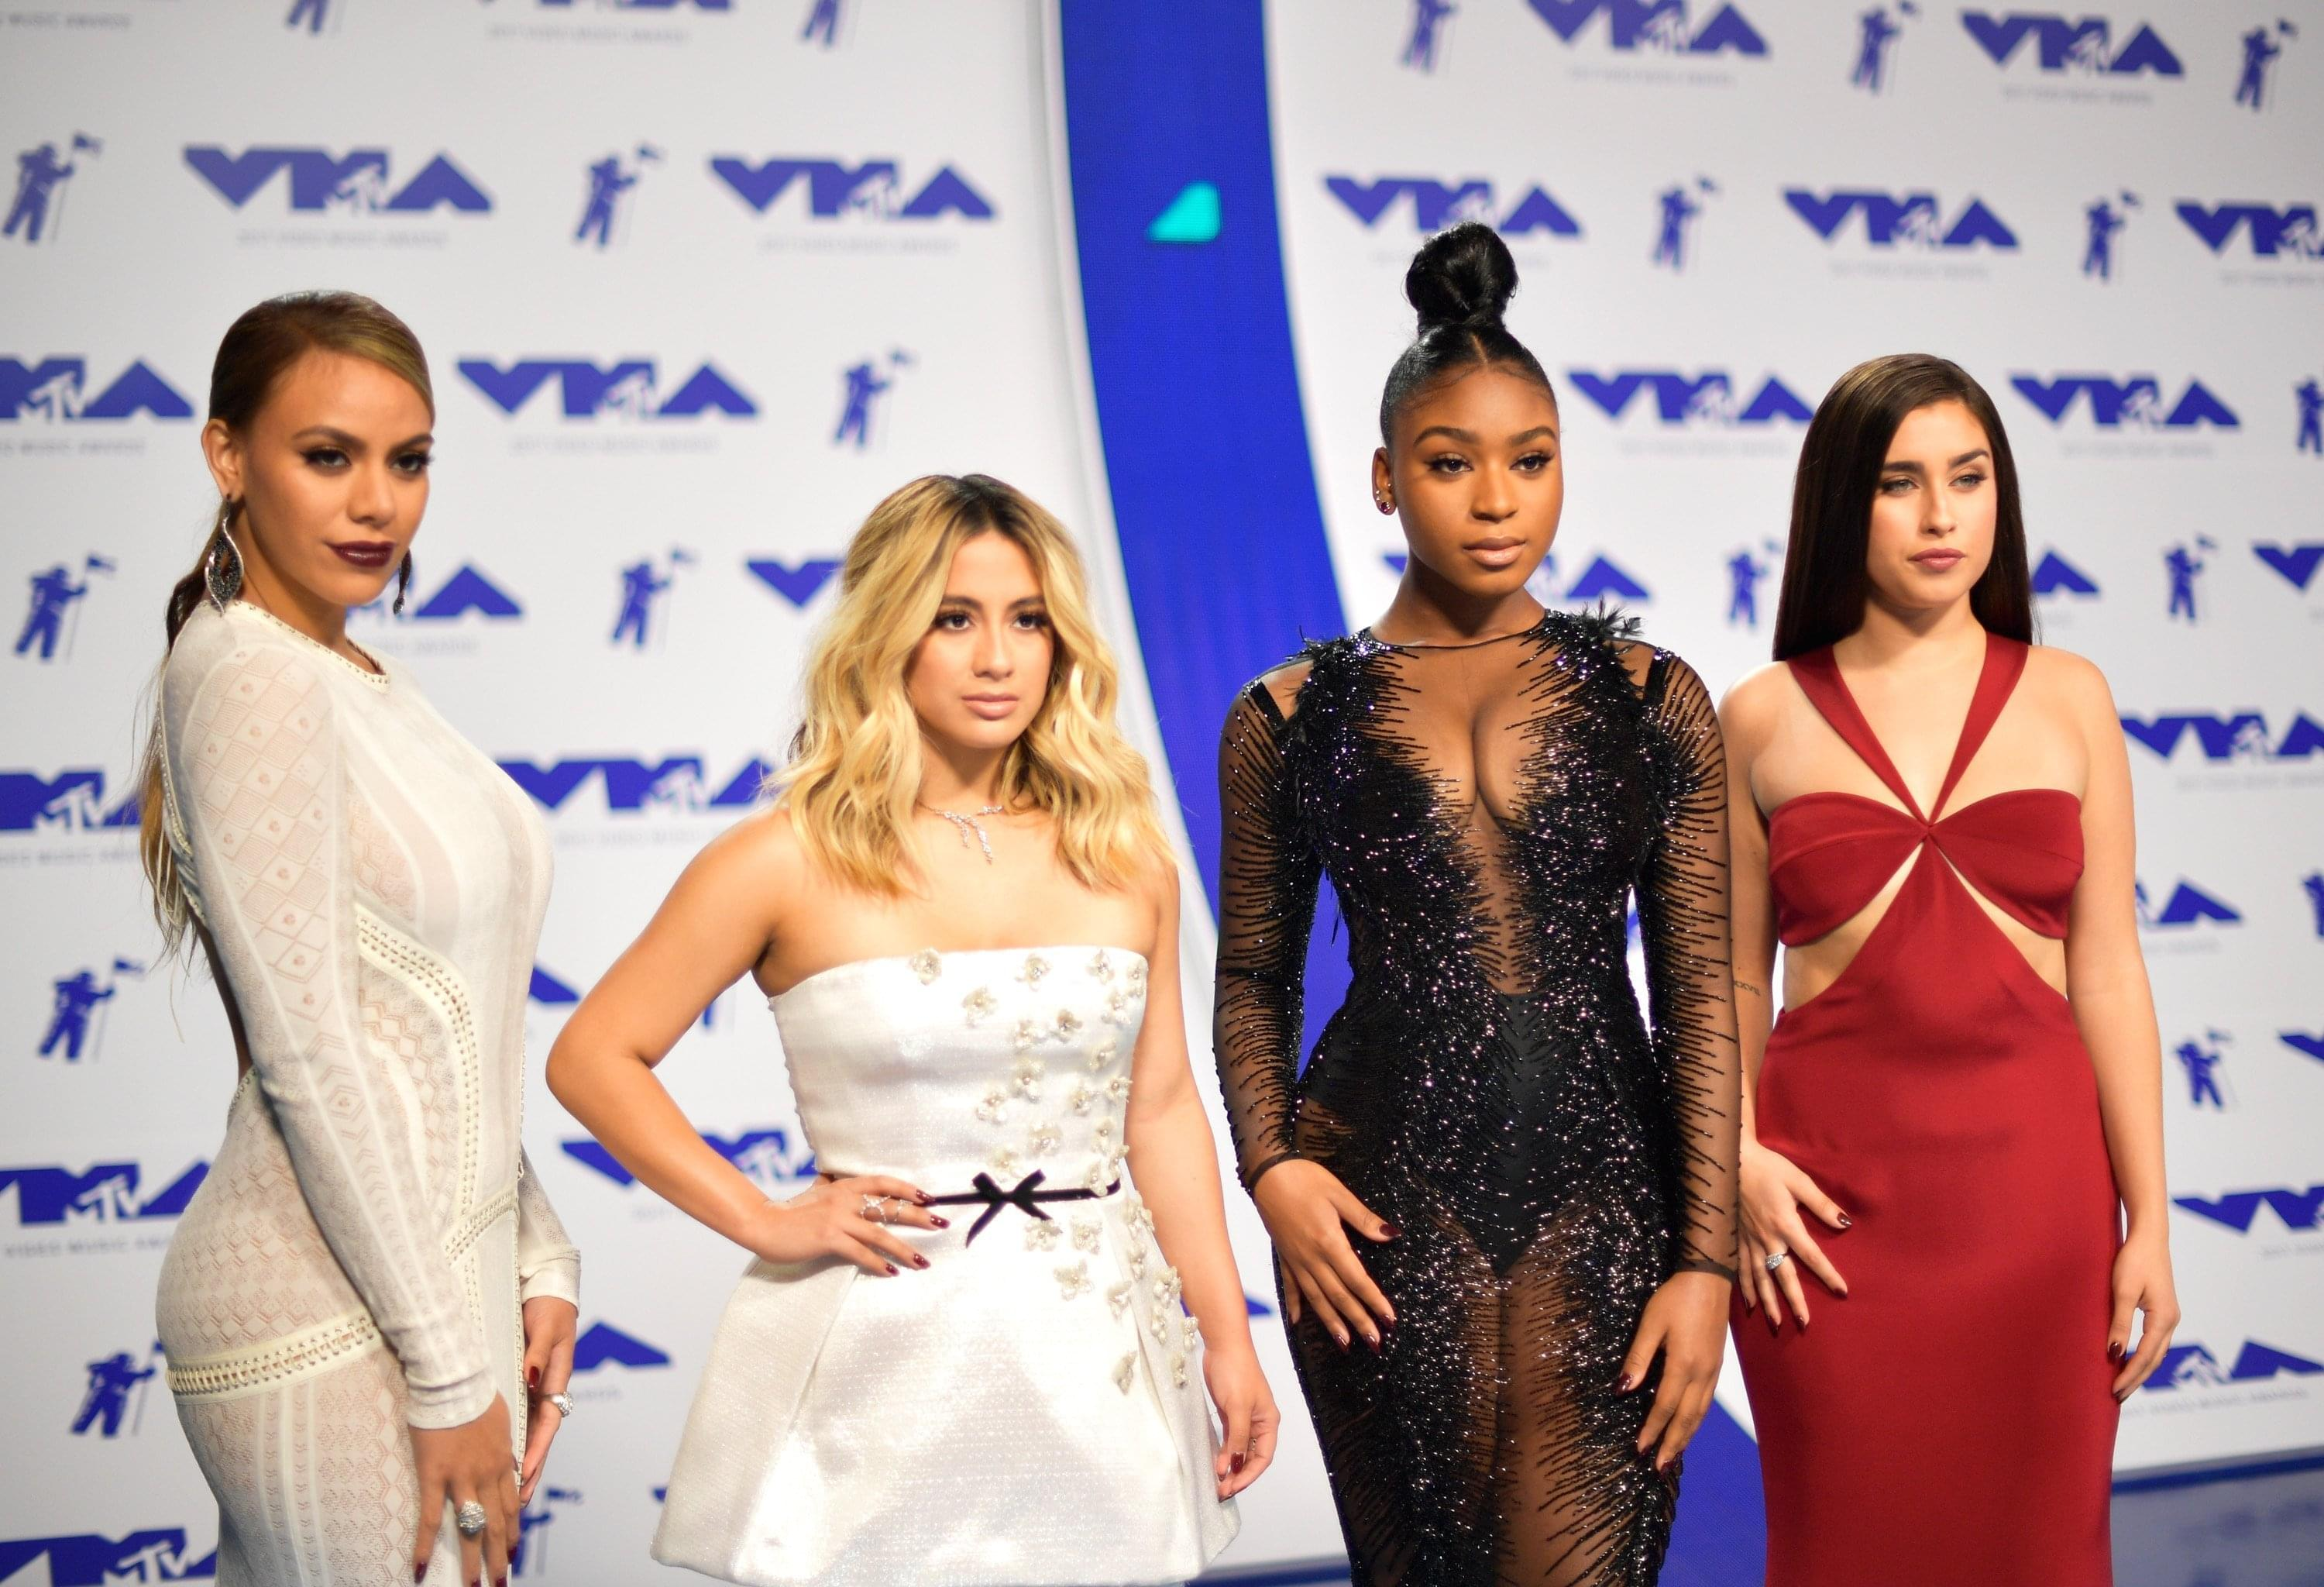 Camila Cabello Wants To Reunite With Fifth Harmony